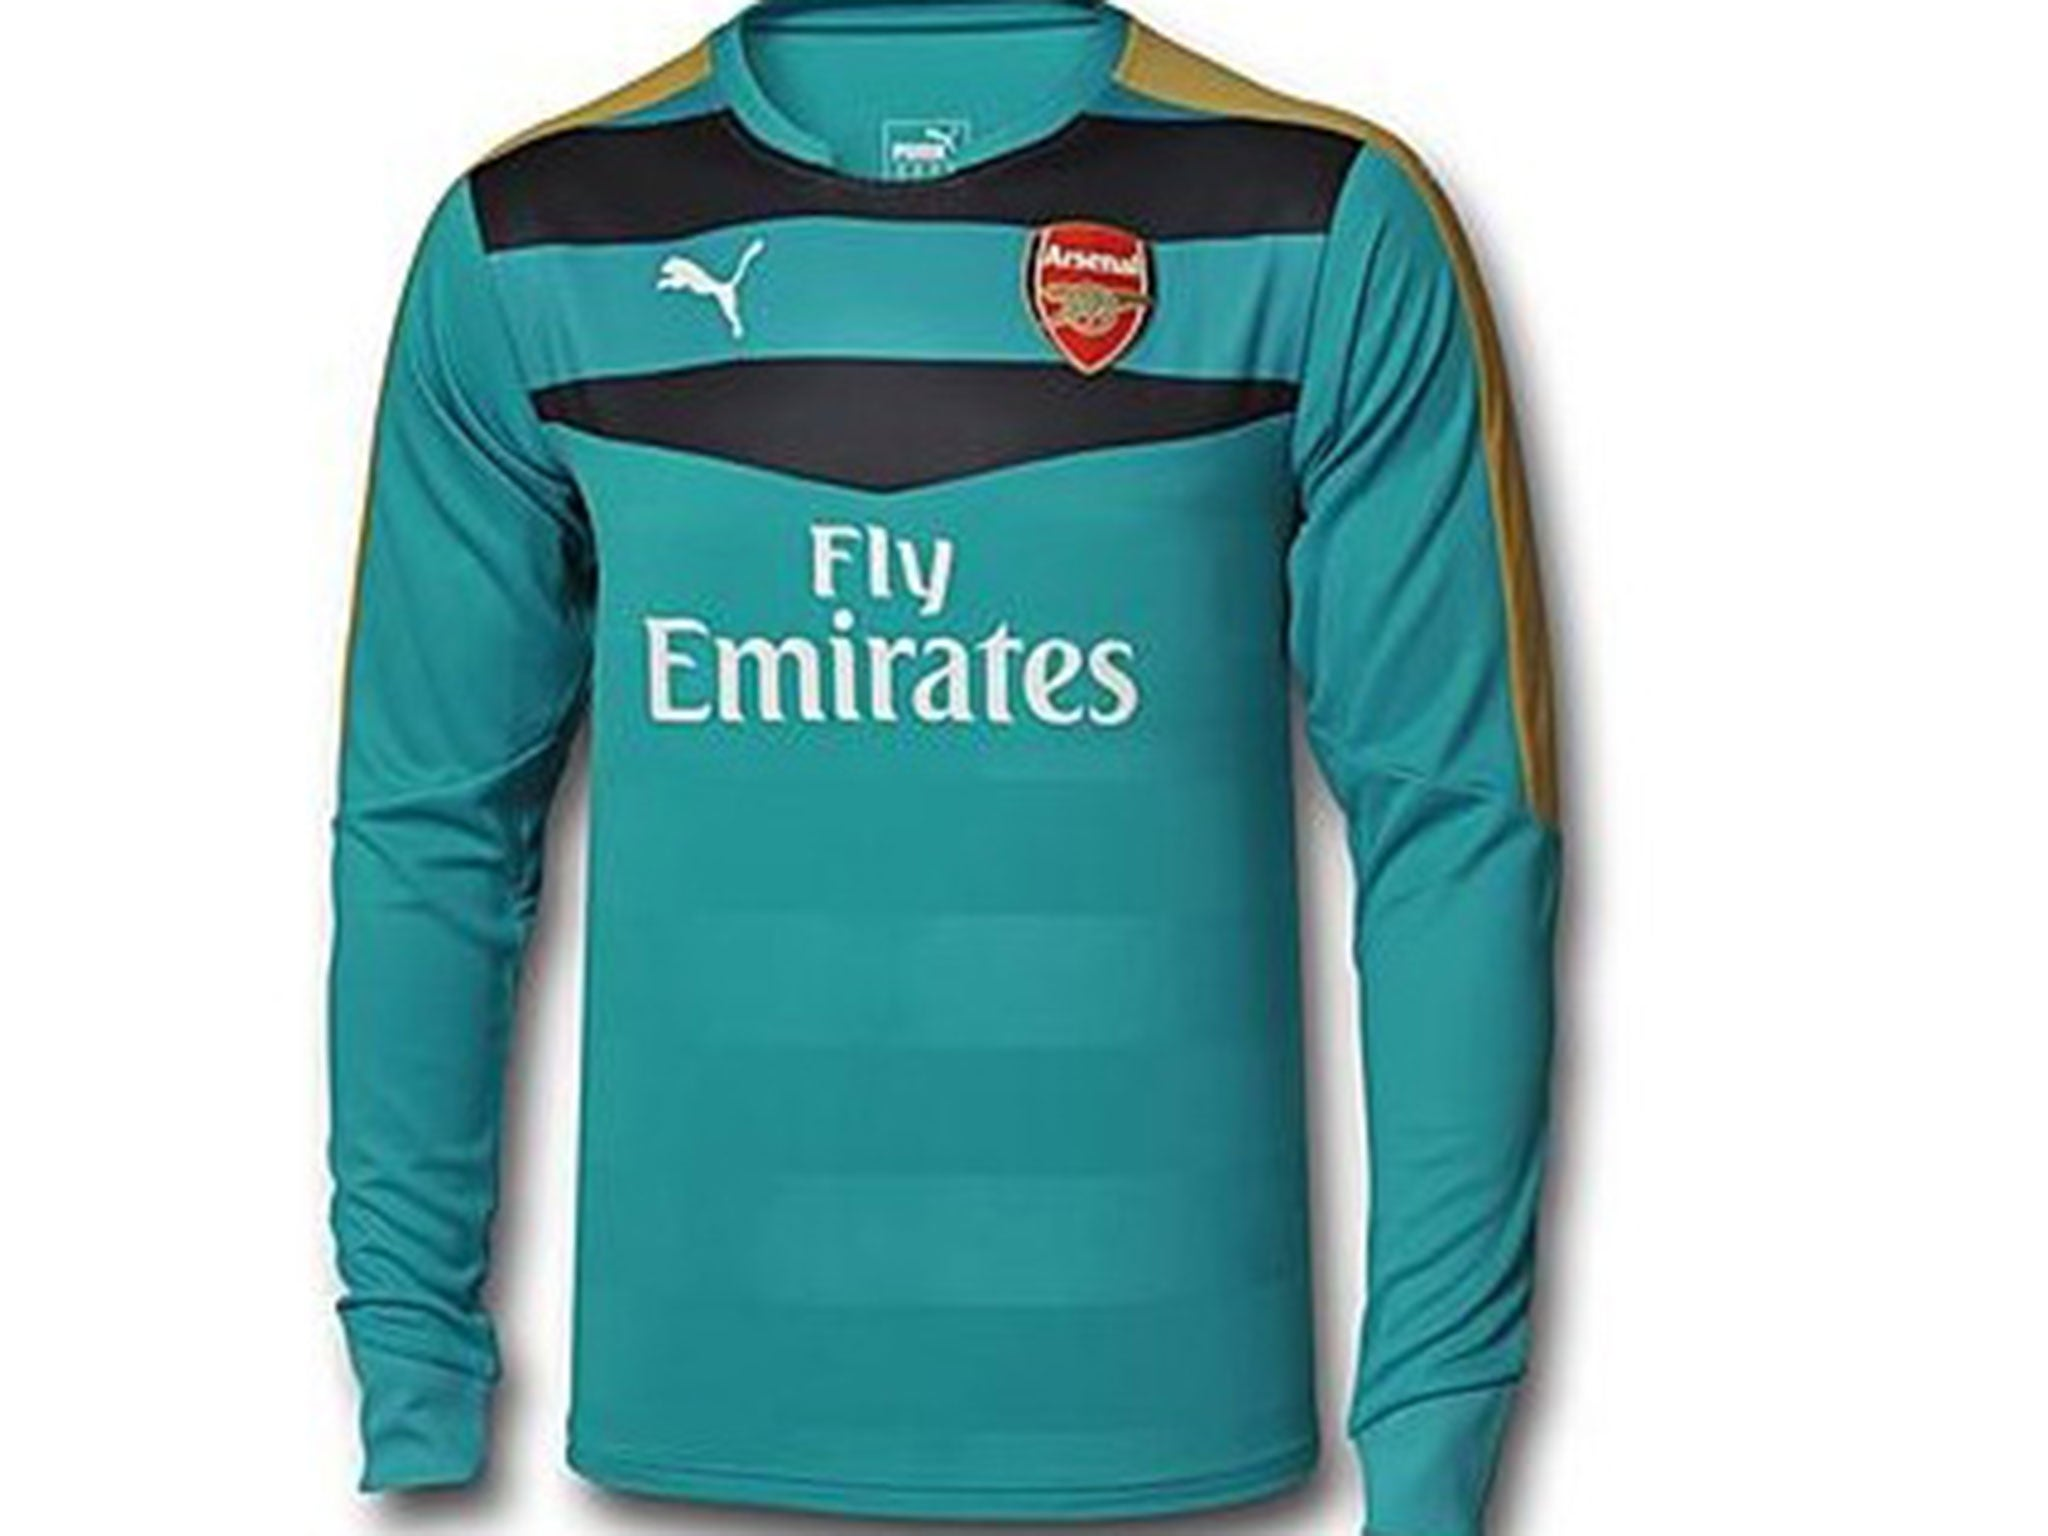 1e3e4ff17d6 Arsenal 2015/16 goalkeeper shirts do not have short sleeves: Have ...